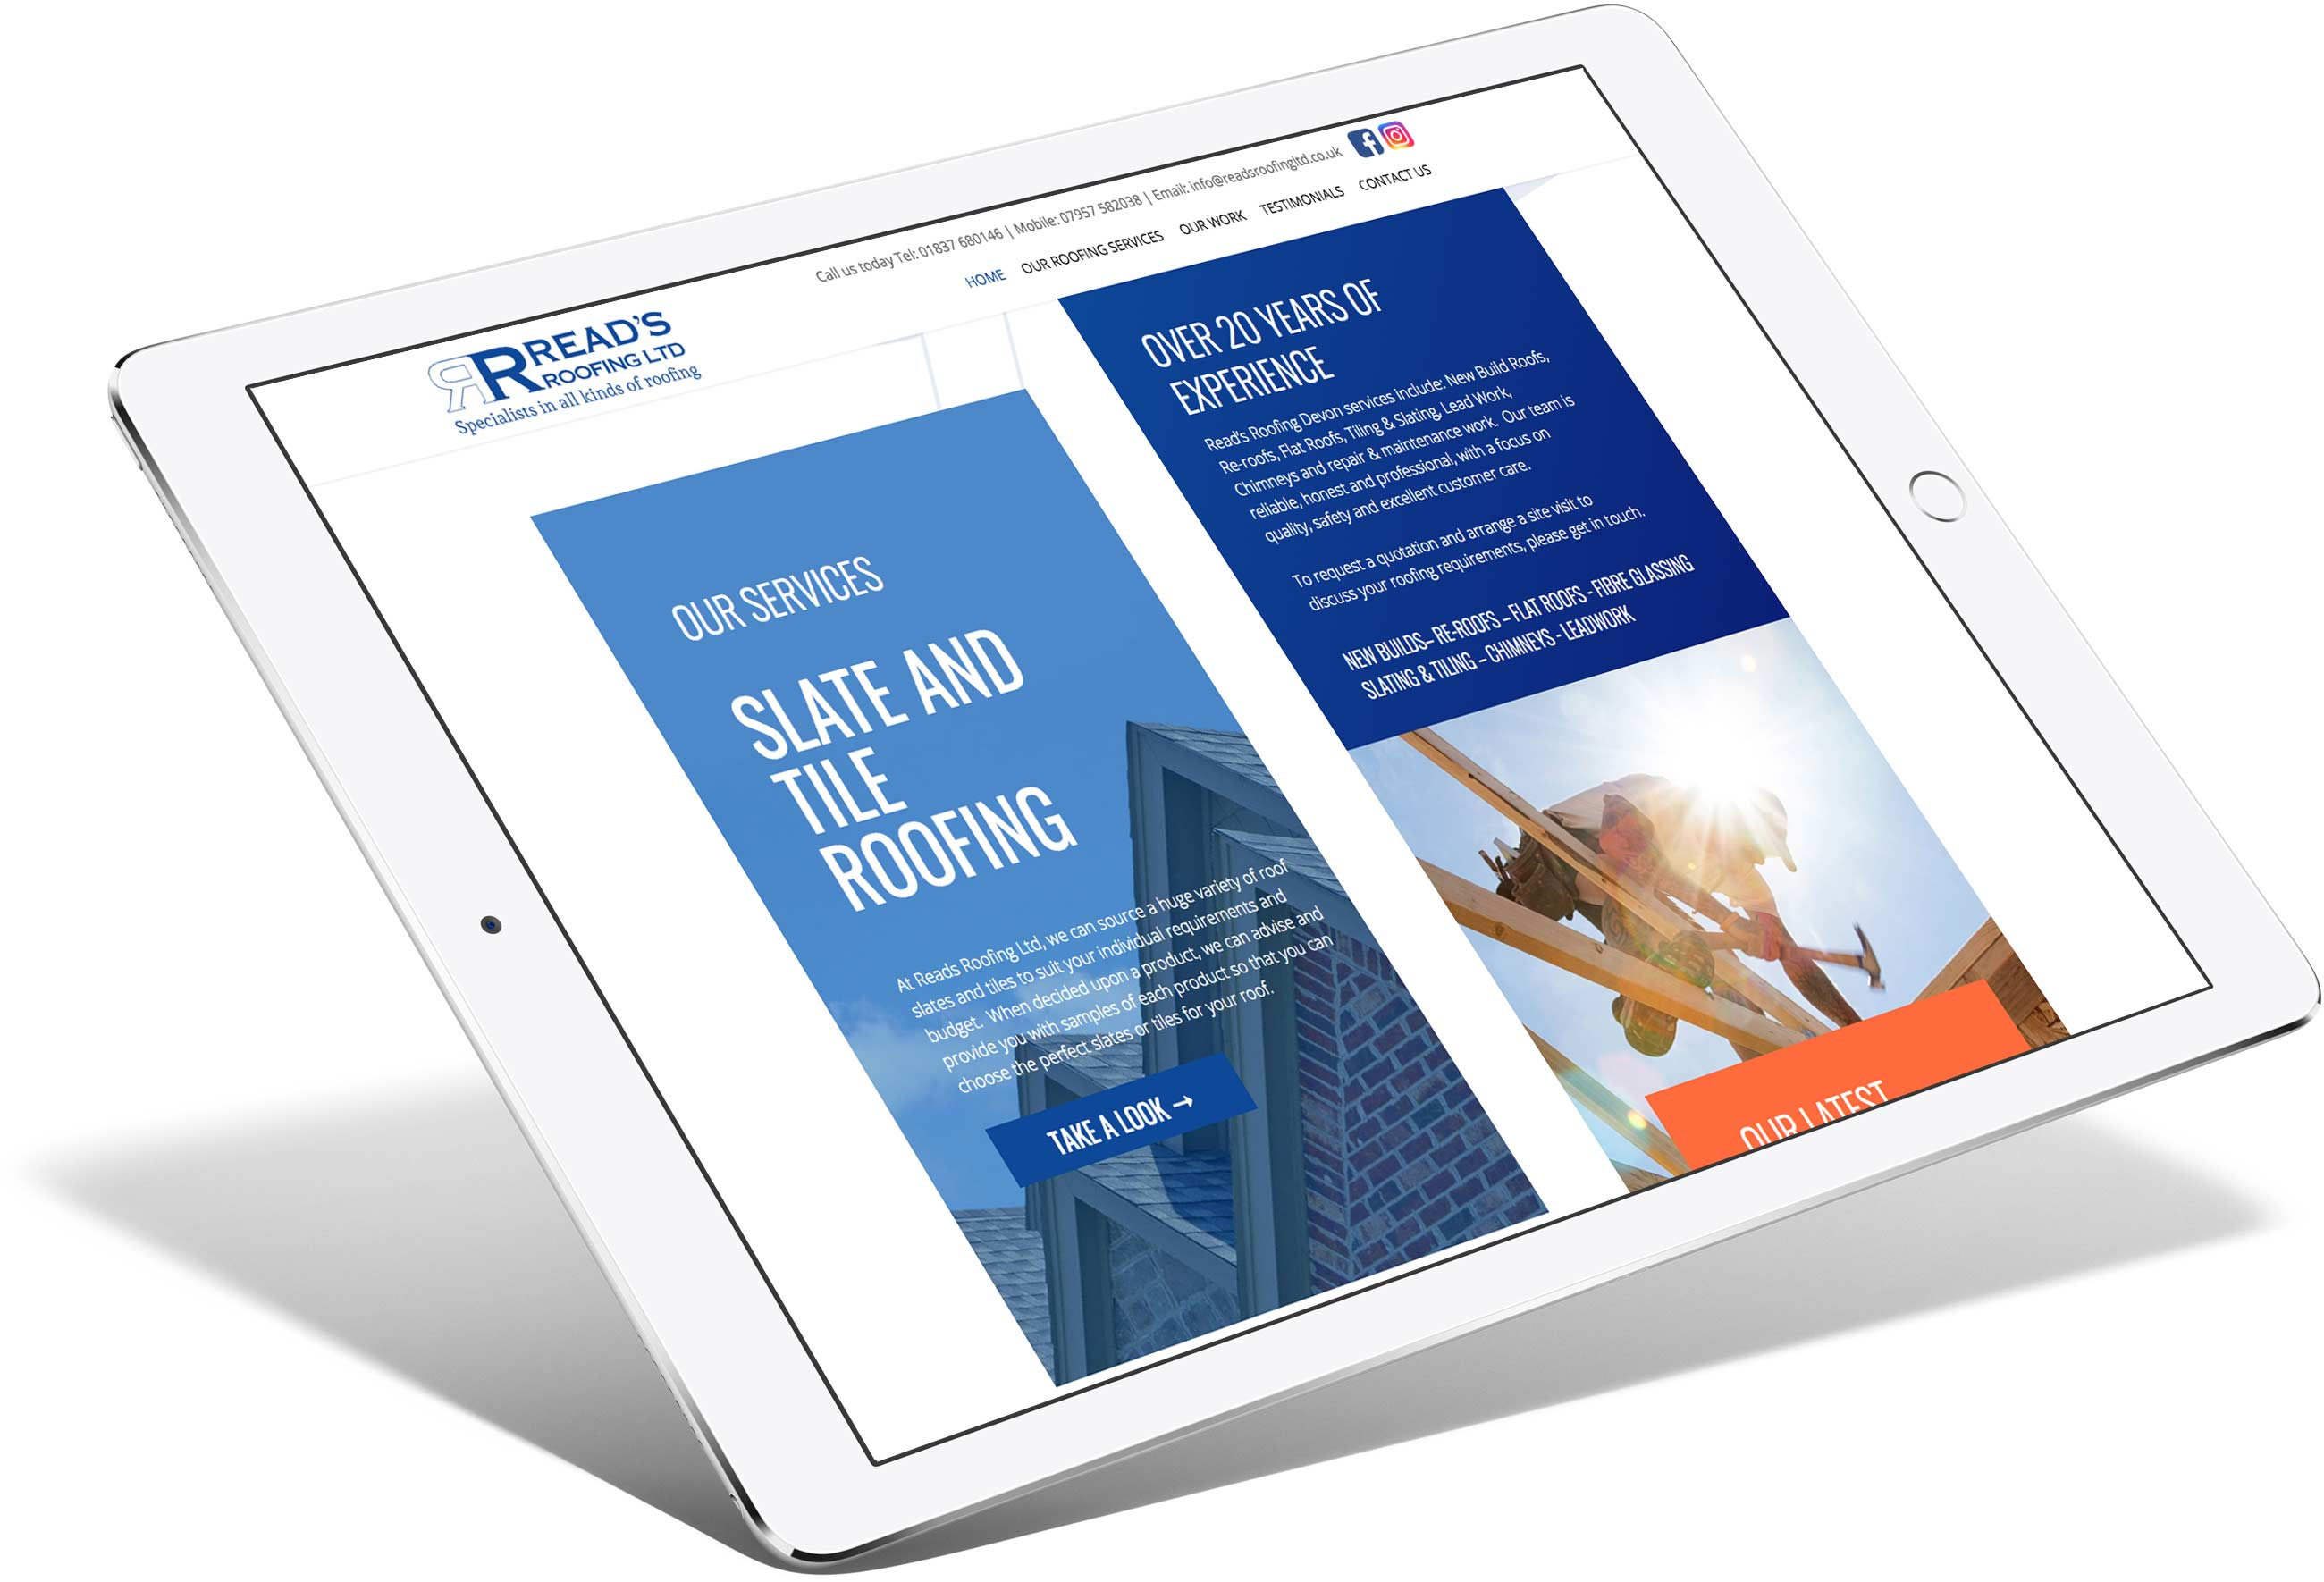 Read's Roofing | Responsive Website